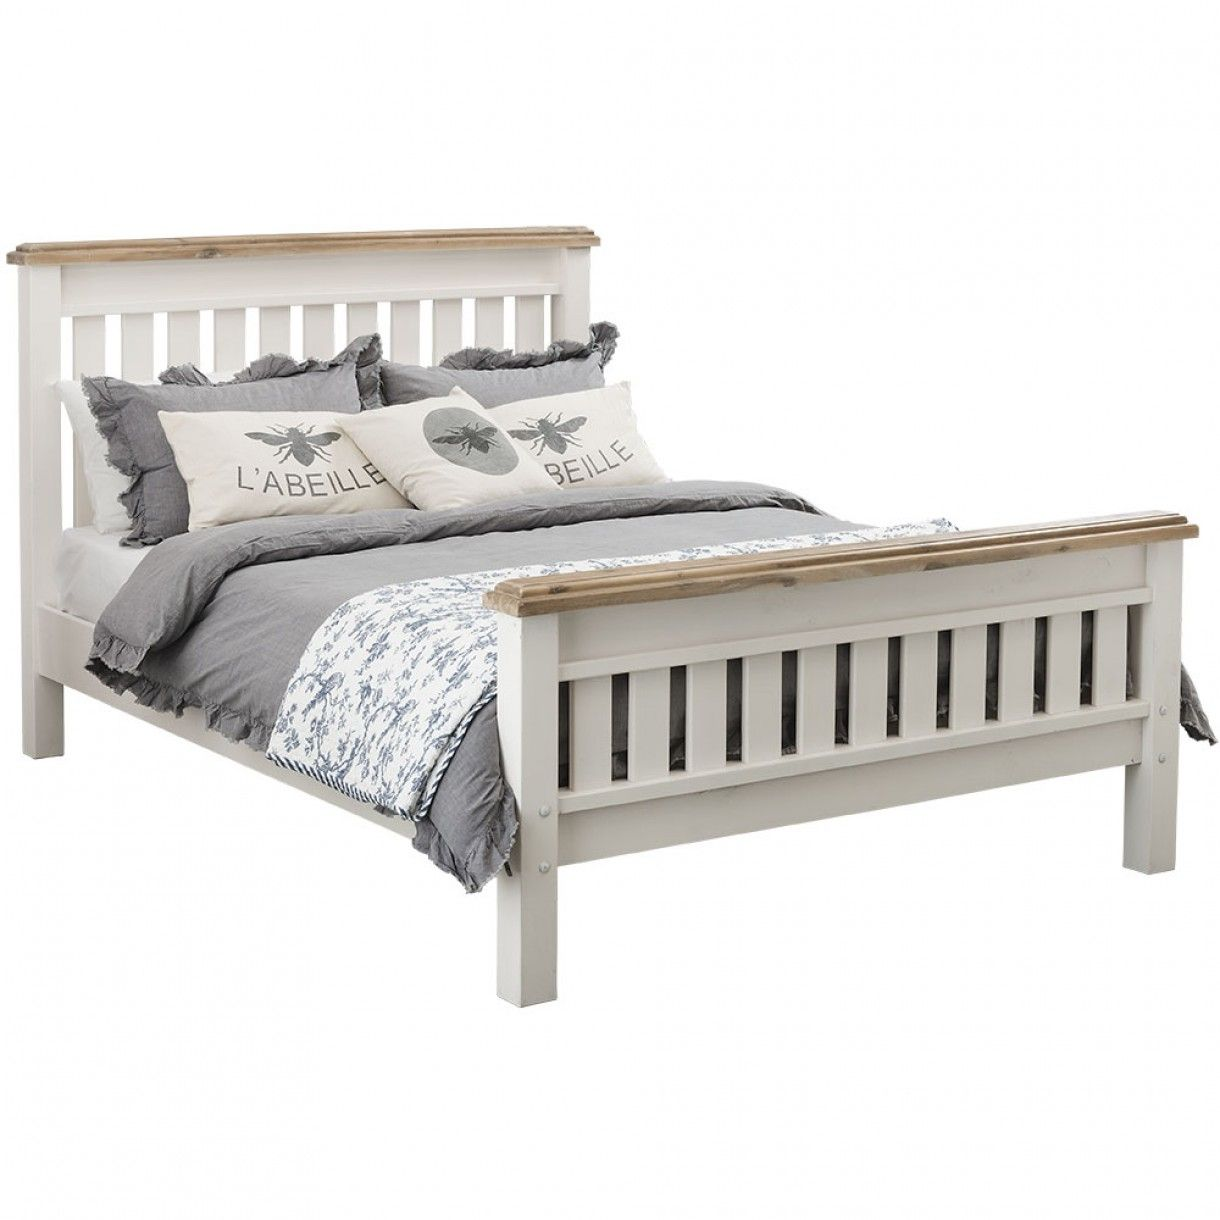 Early Settler Furniture Sets Google Search Bedroom Styles I - Settler bedroom furniture